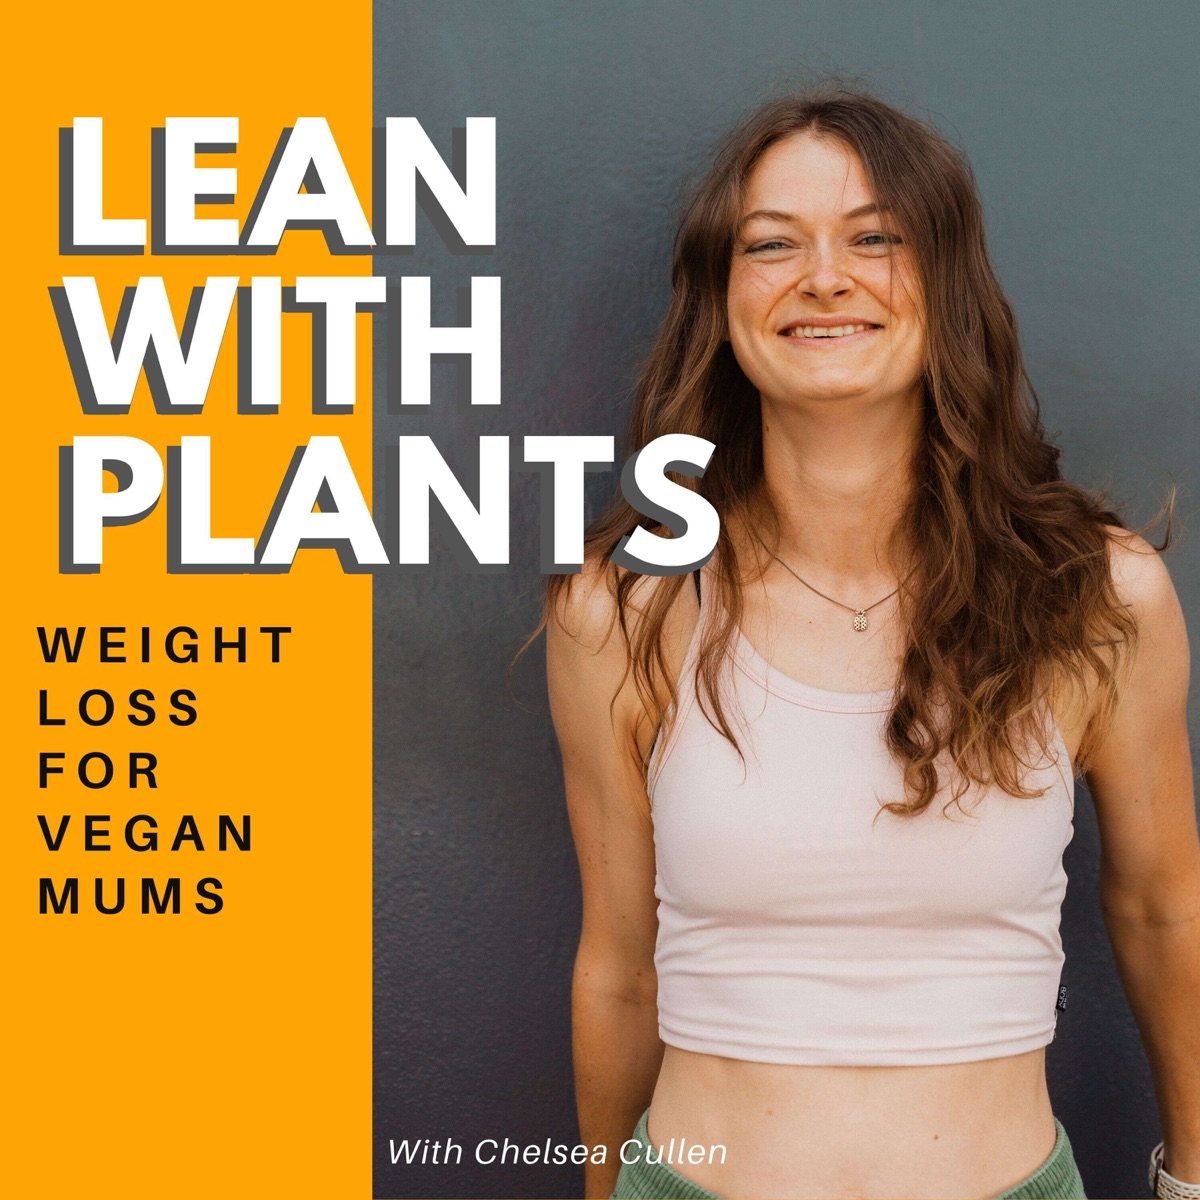 Lean With Plants